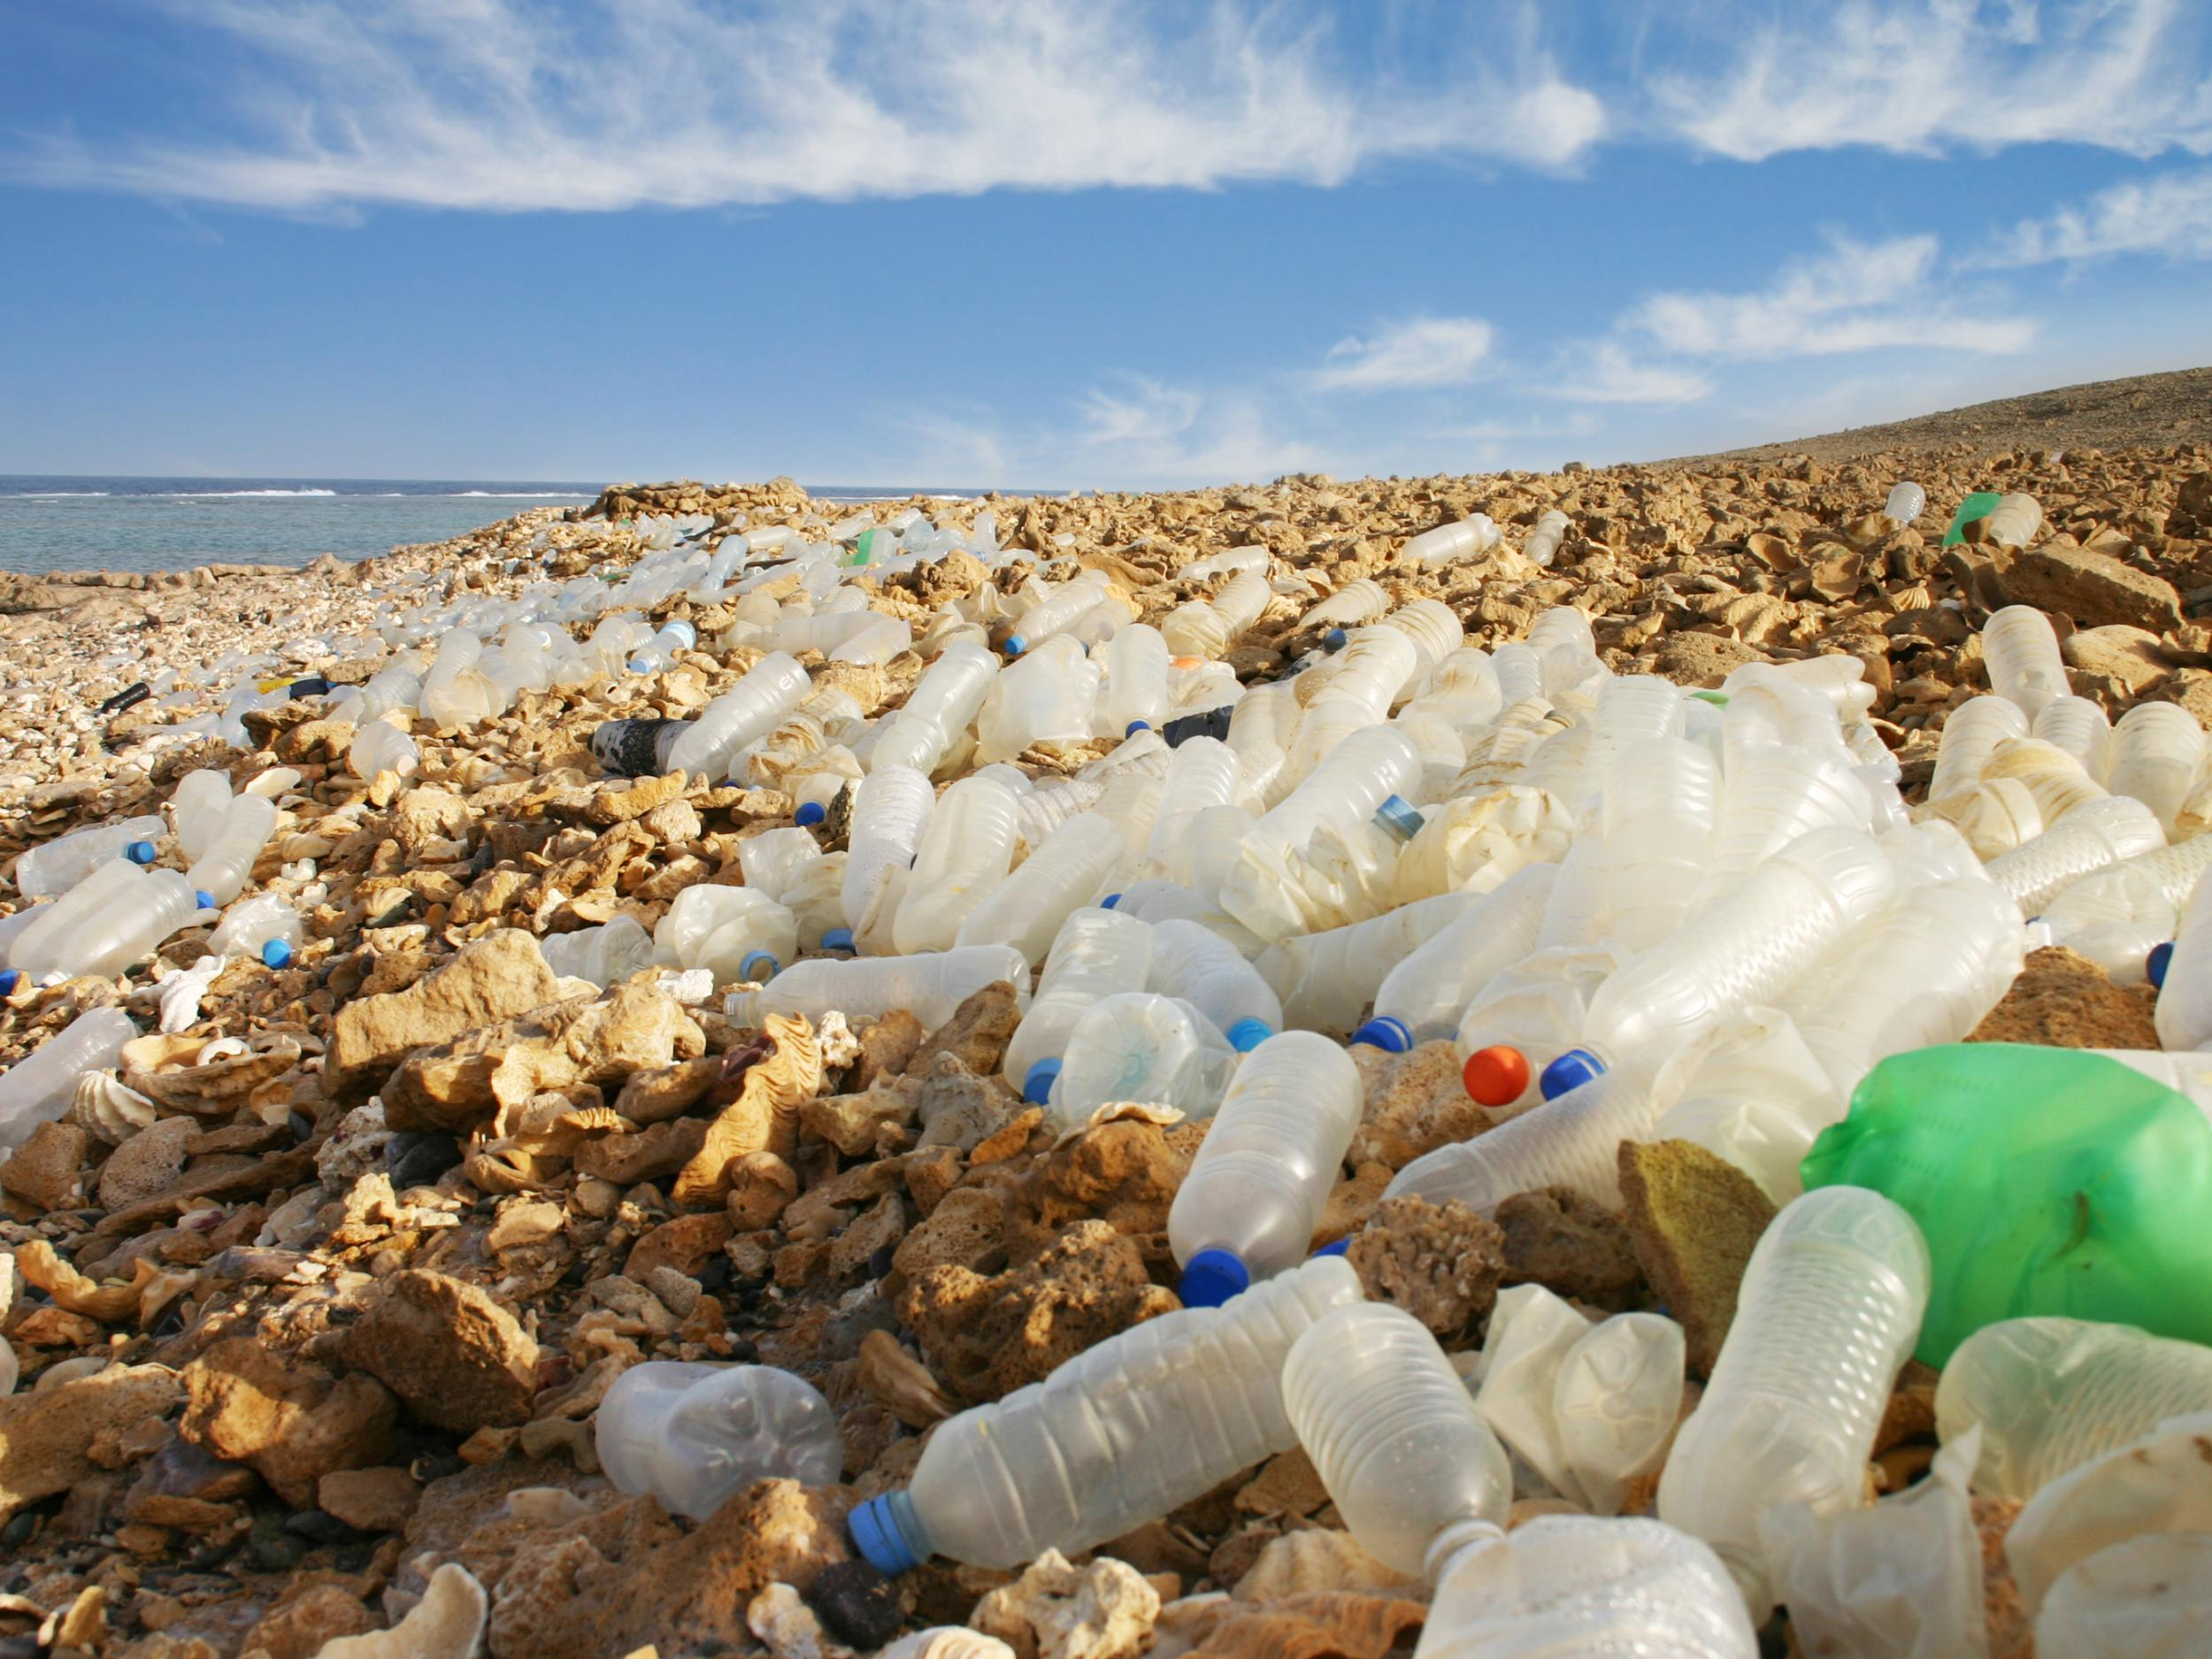 Coca-Cola and Nestle among worst plastic polluters based on